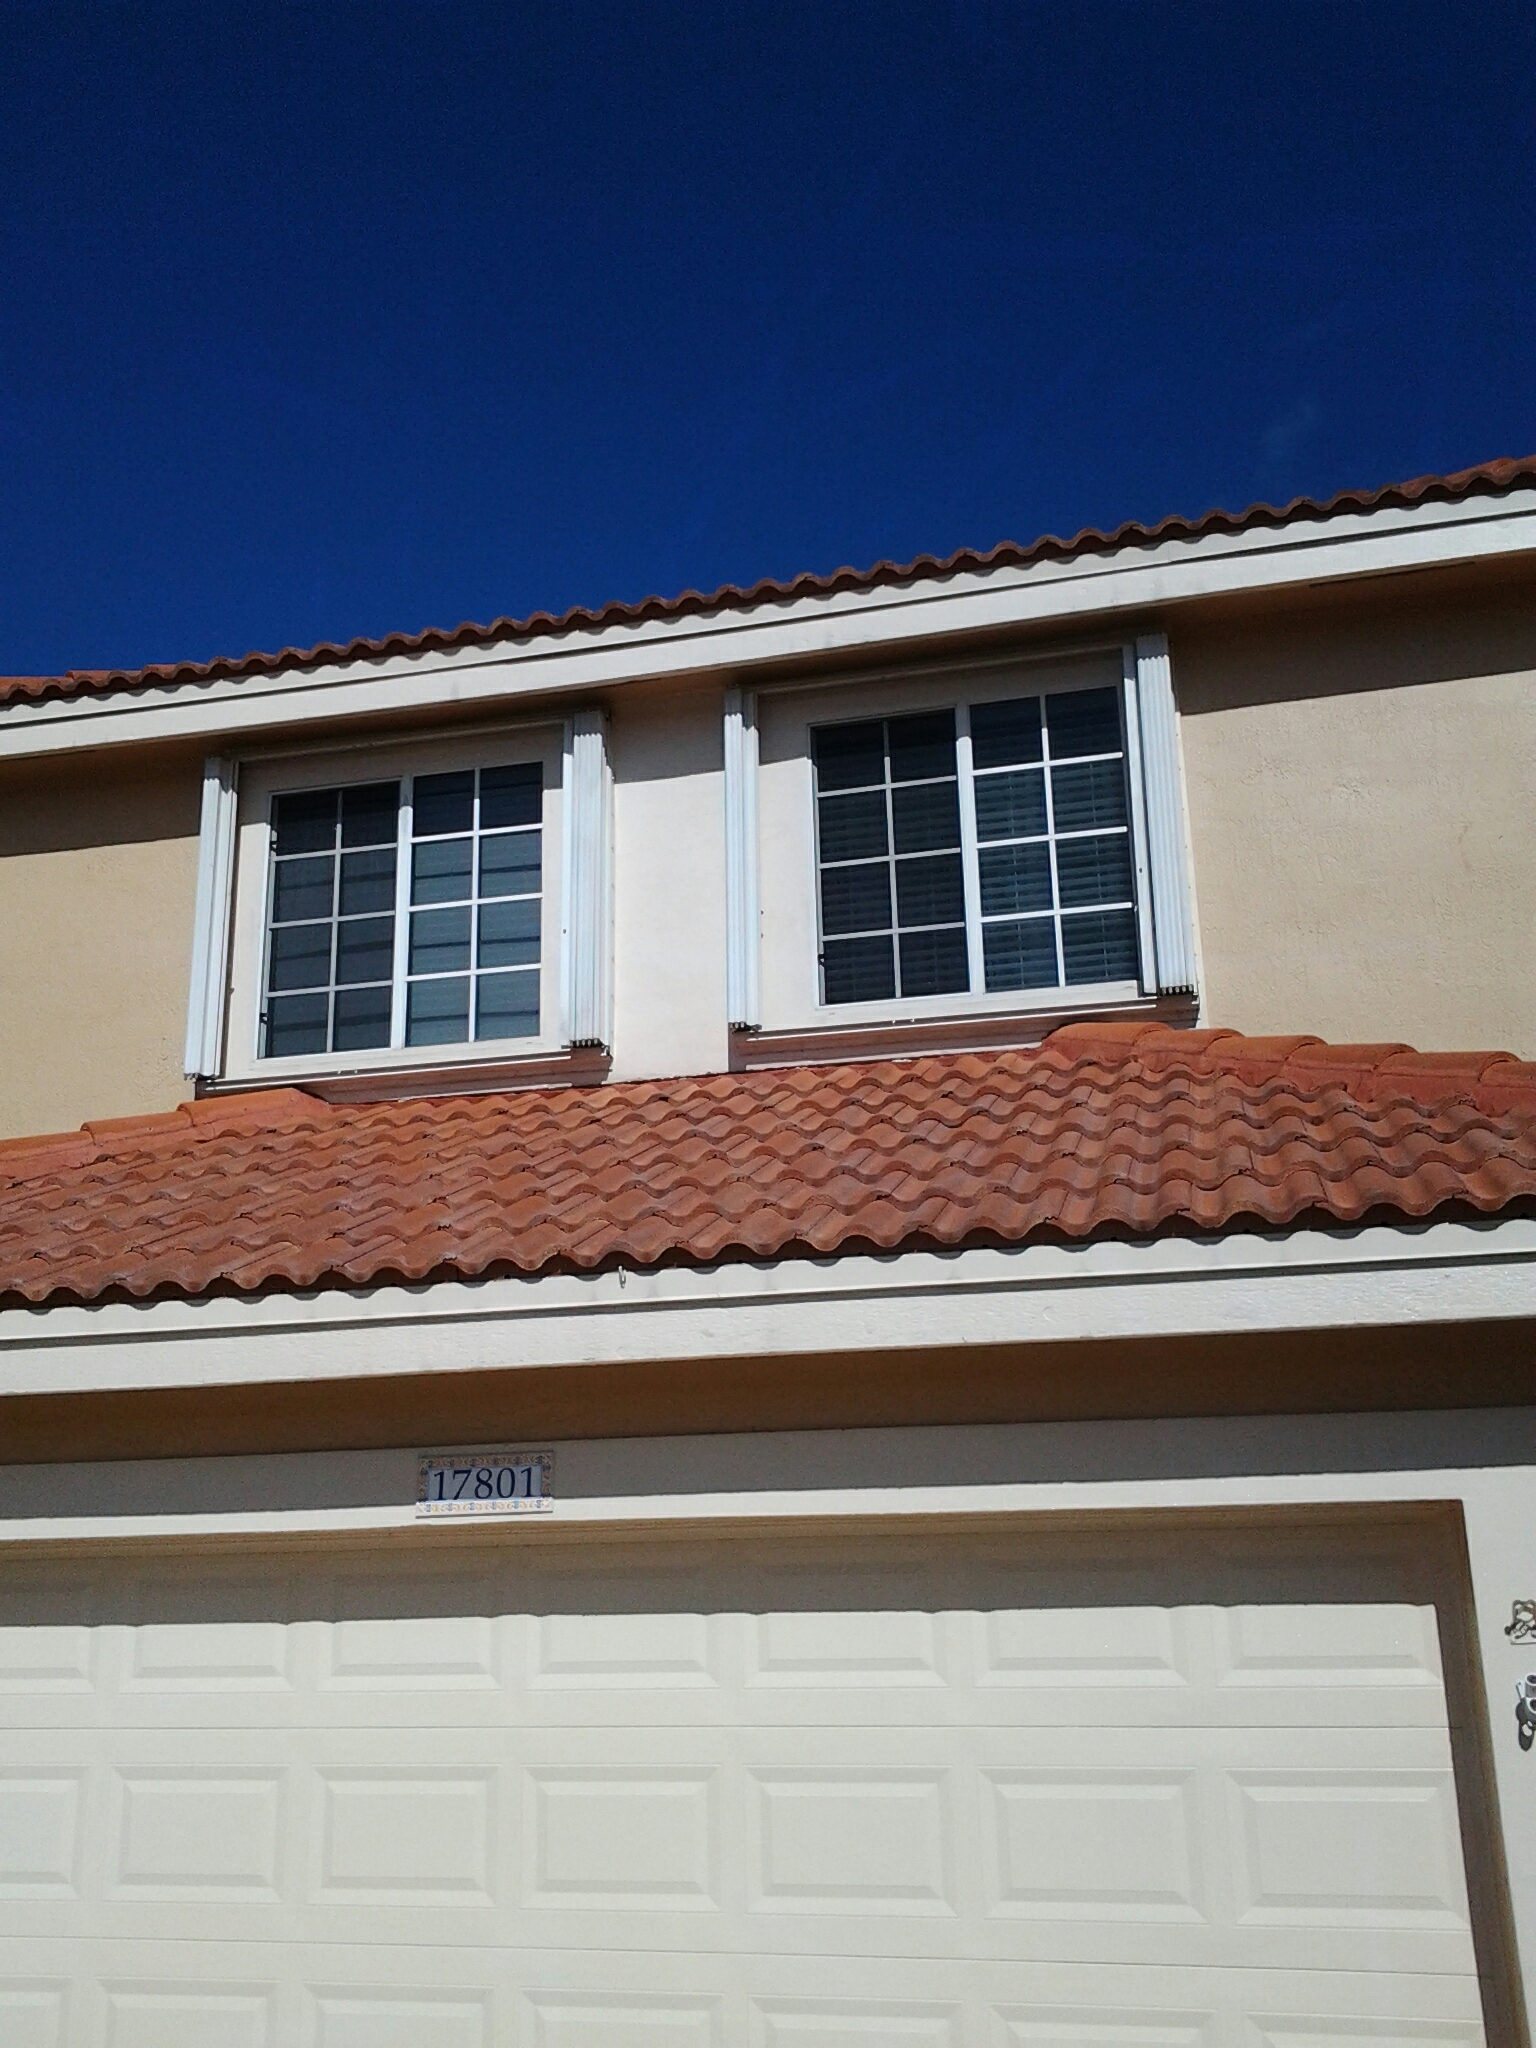 Pembroke Pines, FL - Clean edges and roofacide roof